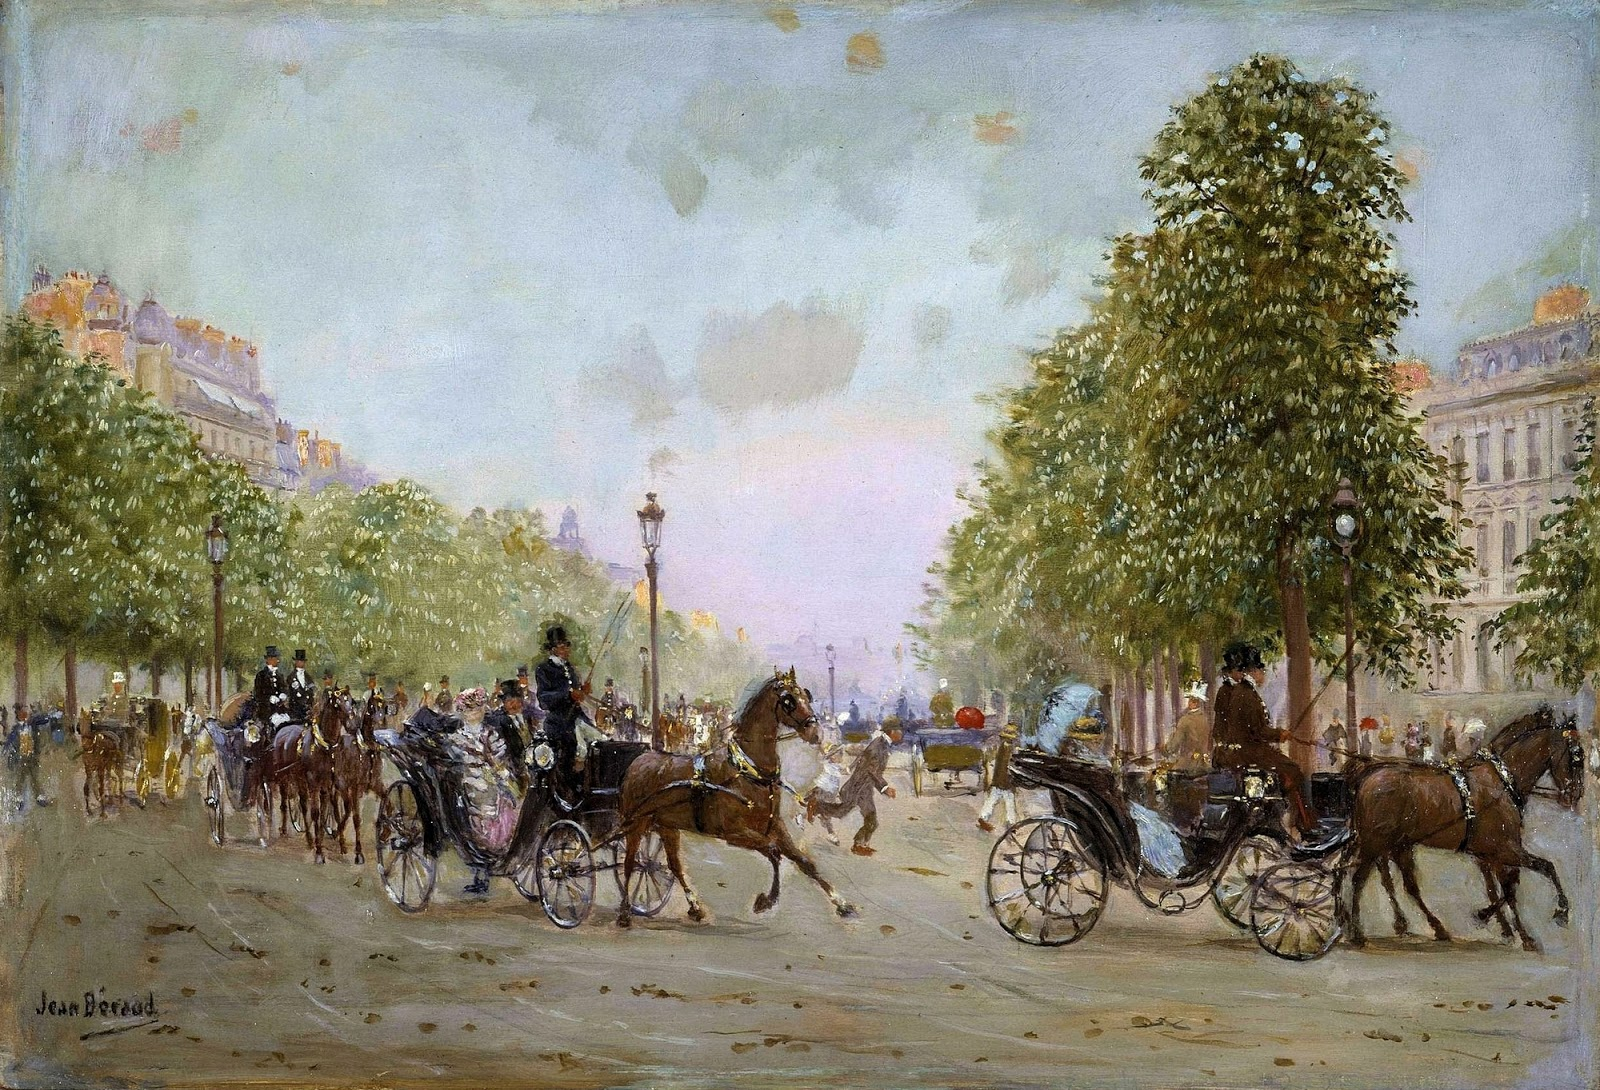 Jean    C Araud  The  Promenade  on  the  Champs Elysees